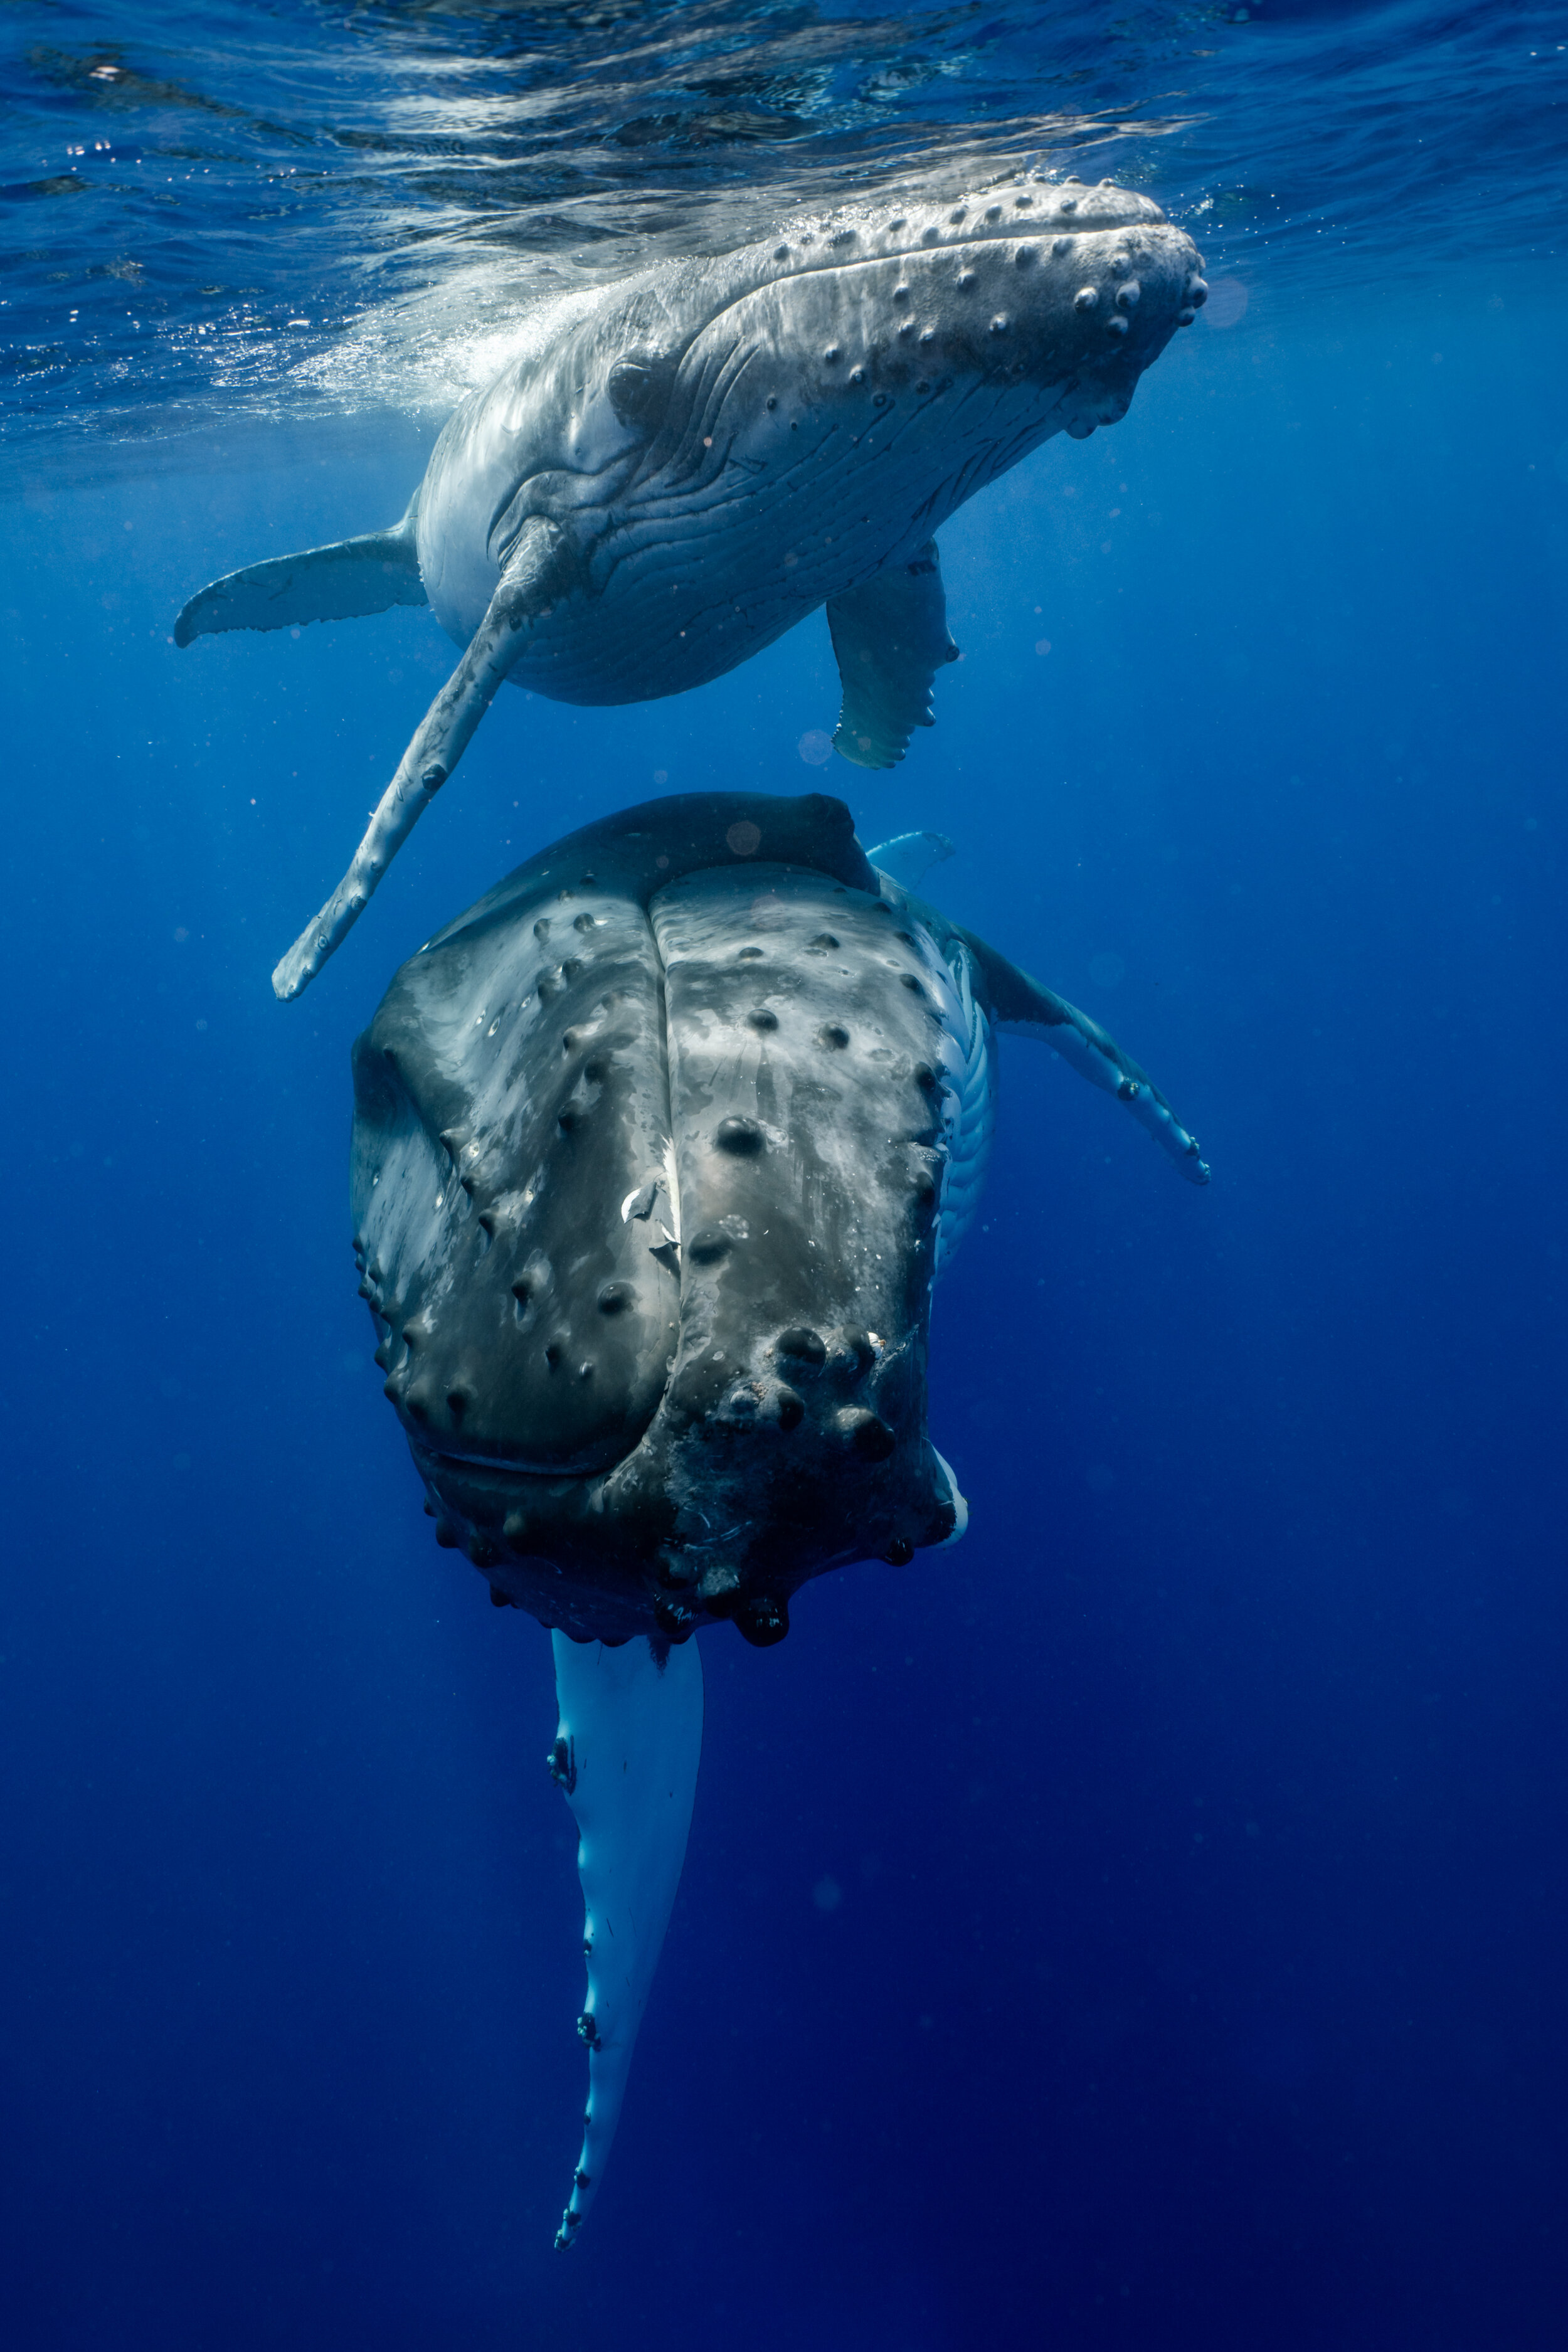 Grey Whale Penis : whale, penis, Tender, World, Humpback, Whale, Courtship, Inertia, Network